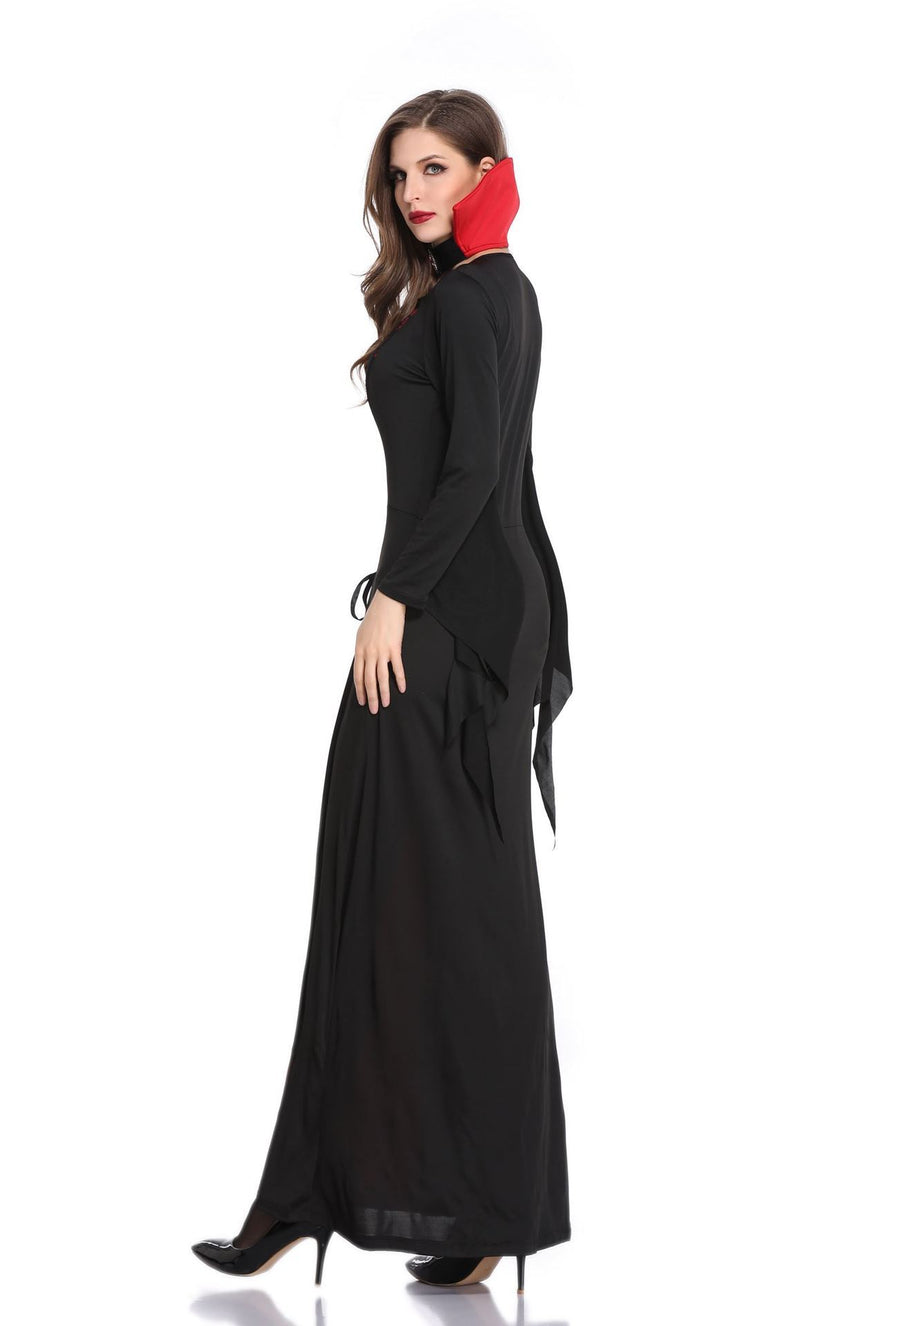 Halloween Black Easter Adult Female Vampire Devil Costumes Queen Dresses